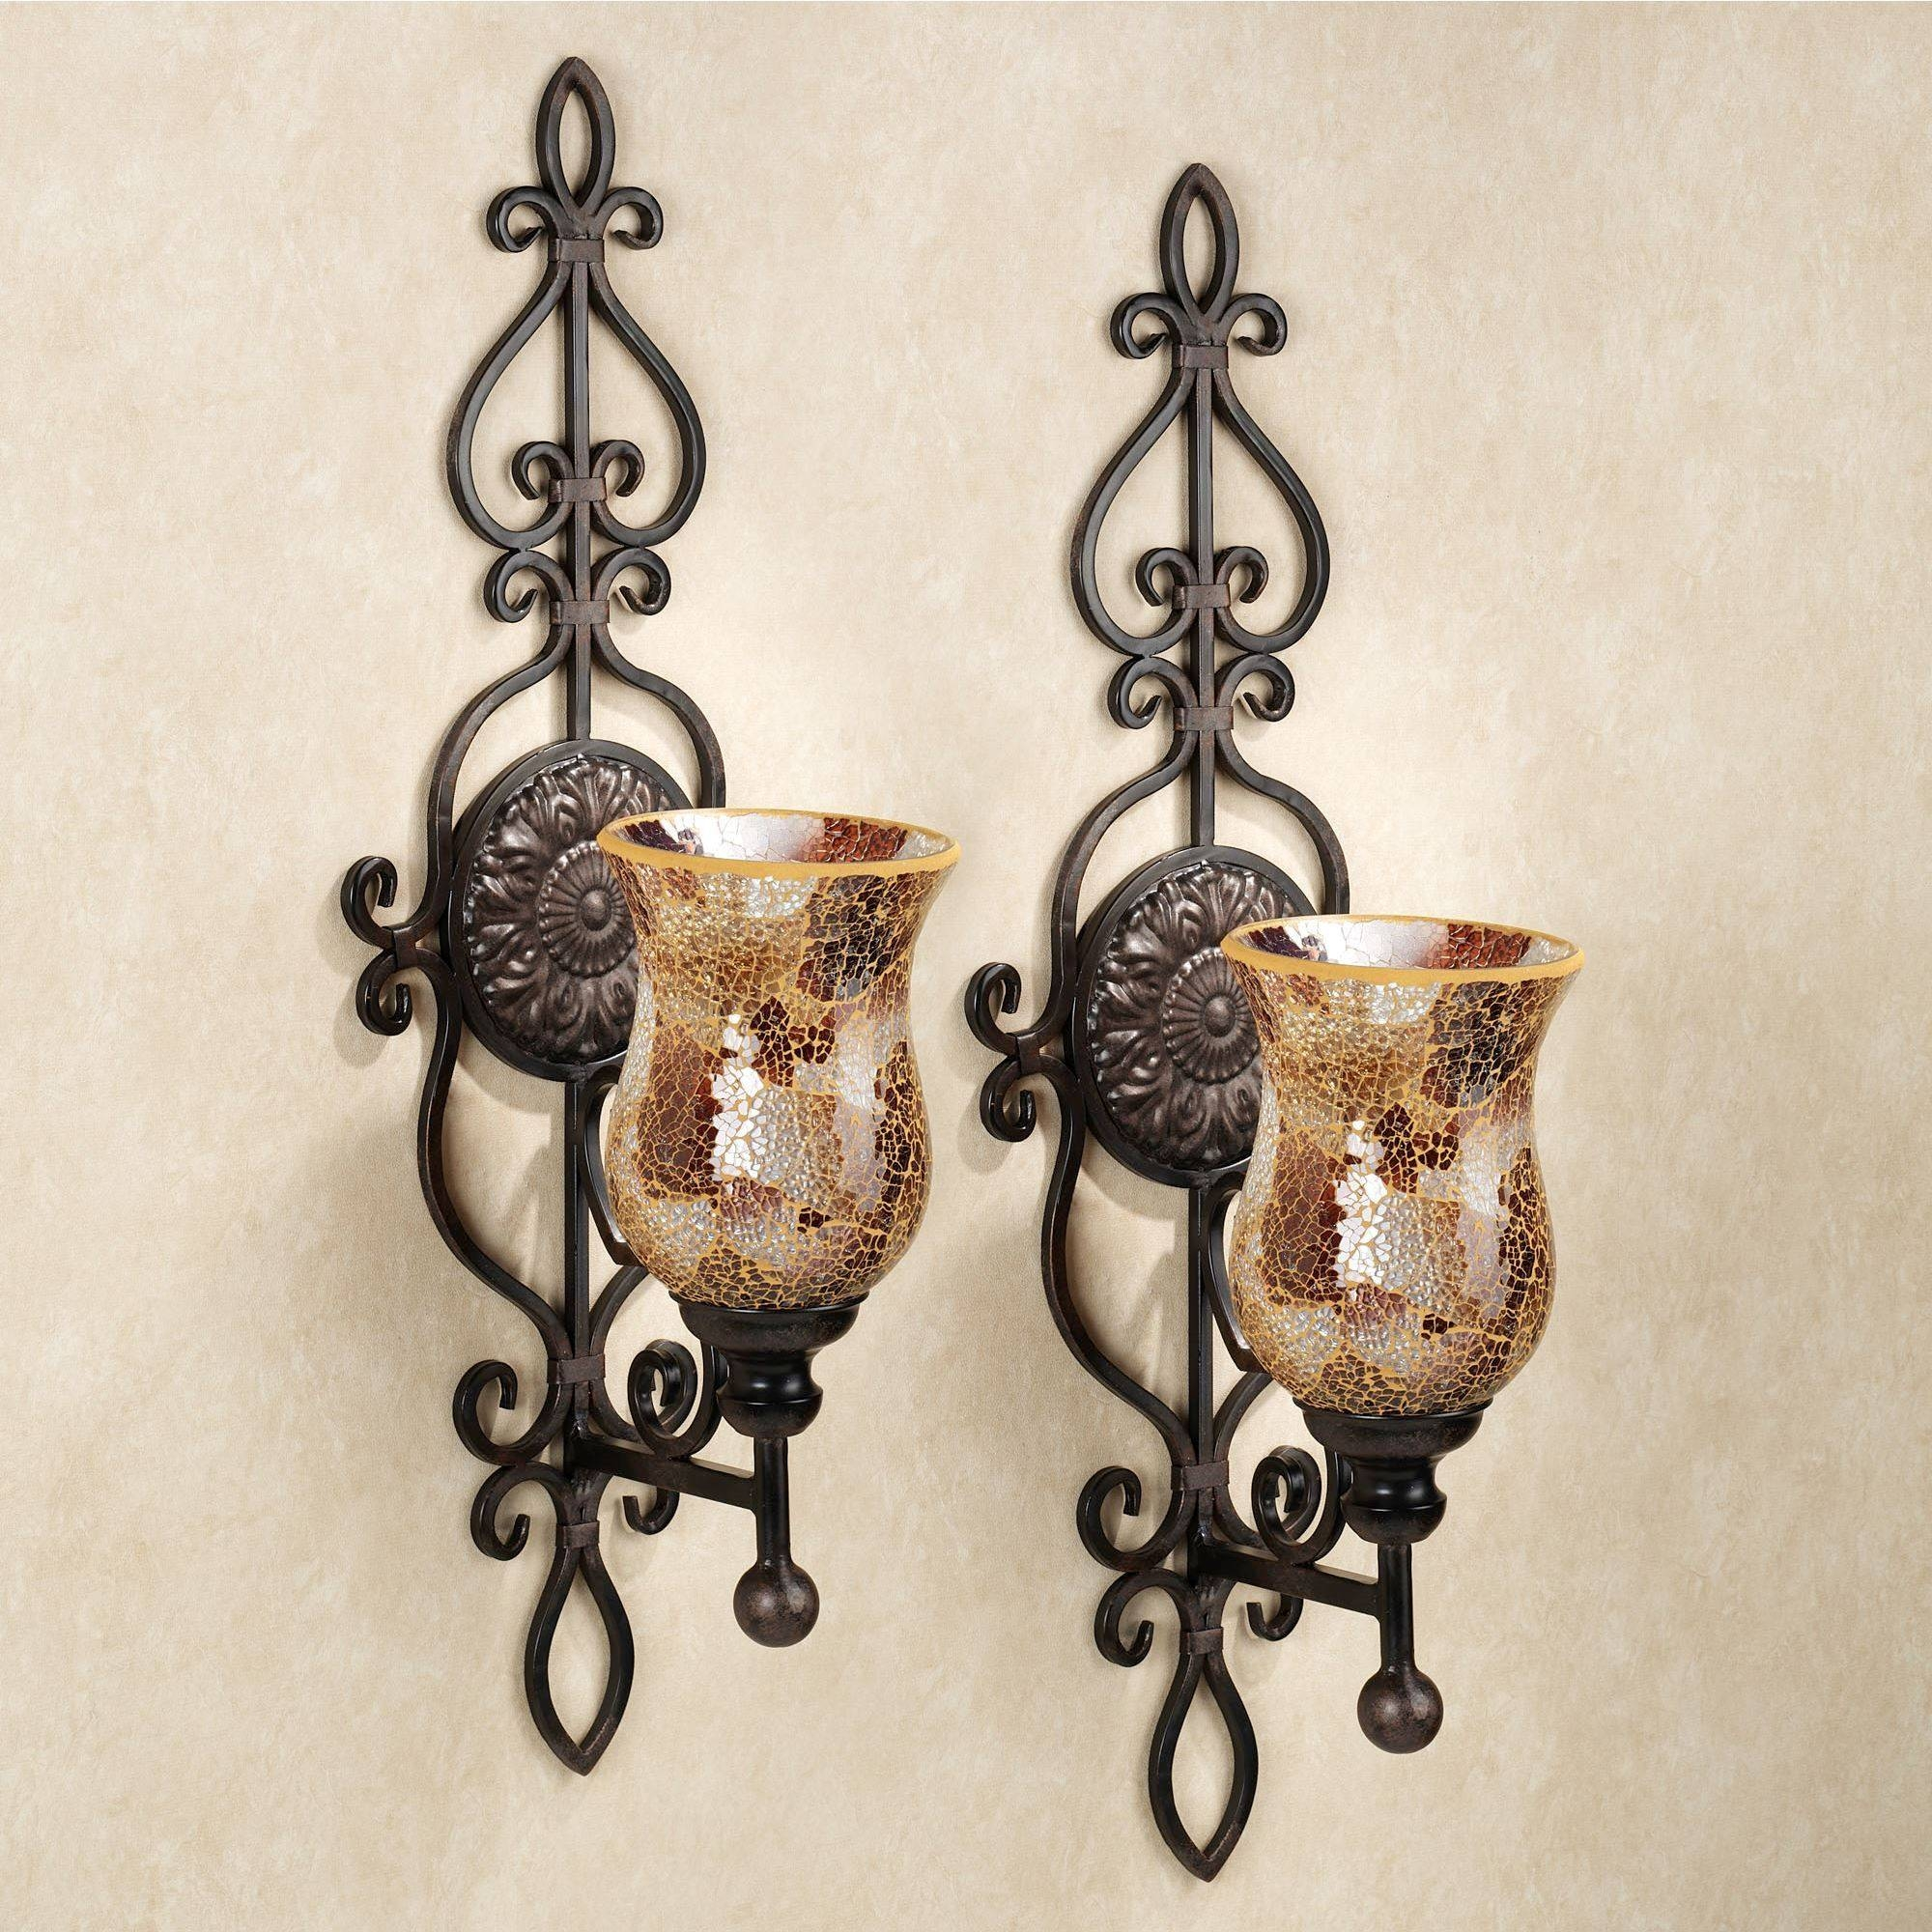 Large Wall Sconces And Candleholders | Touch Of Class With Regard To Newest Metal Wall Art With Candle Holders (View 14 of 20)